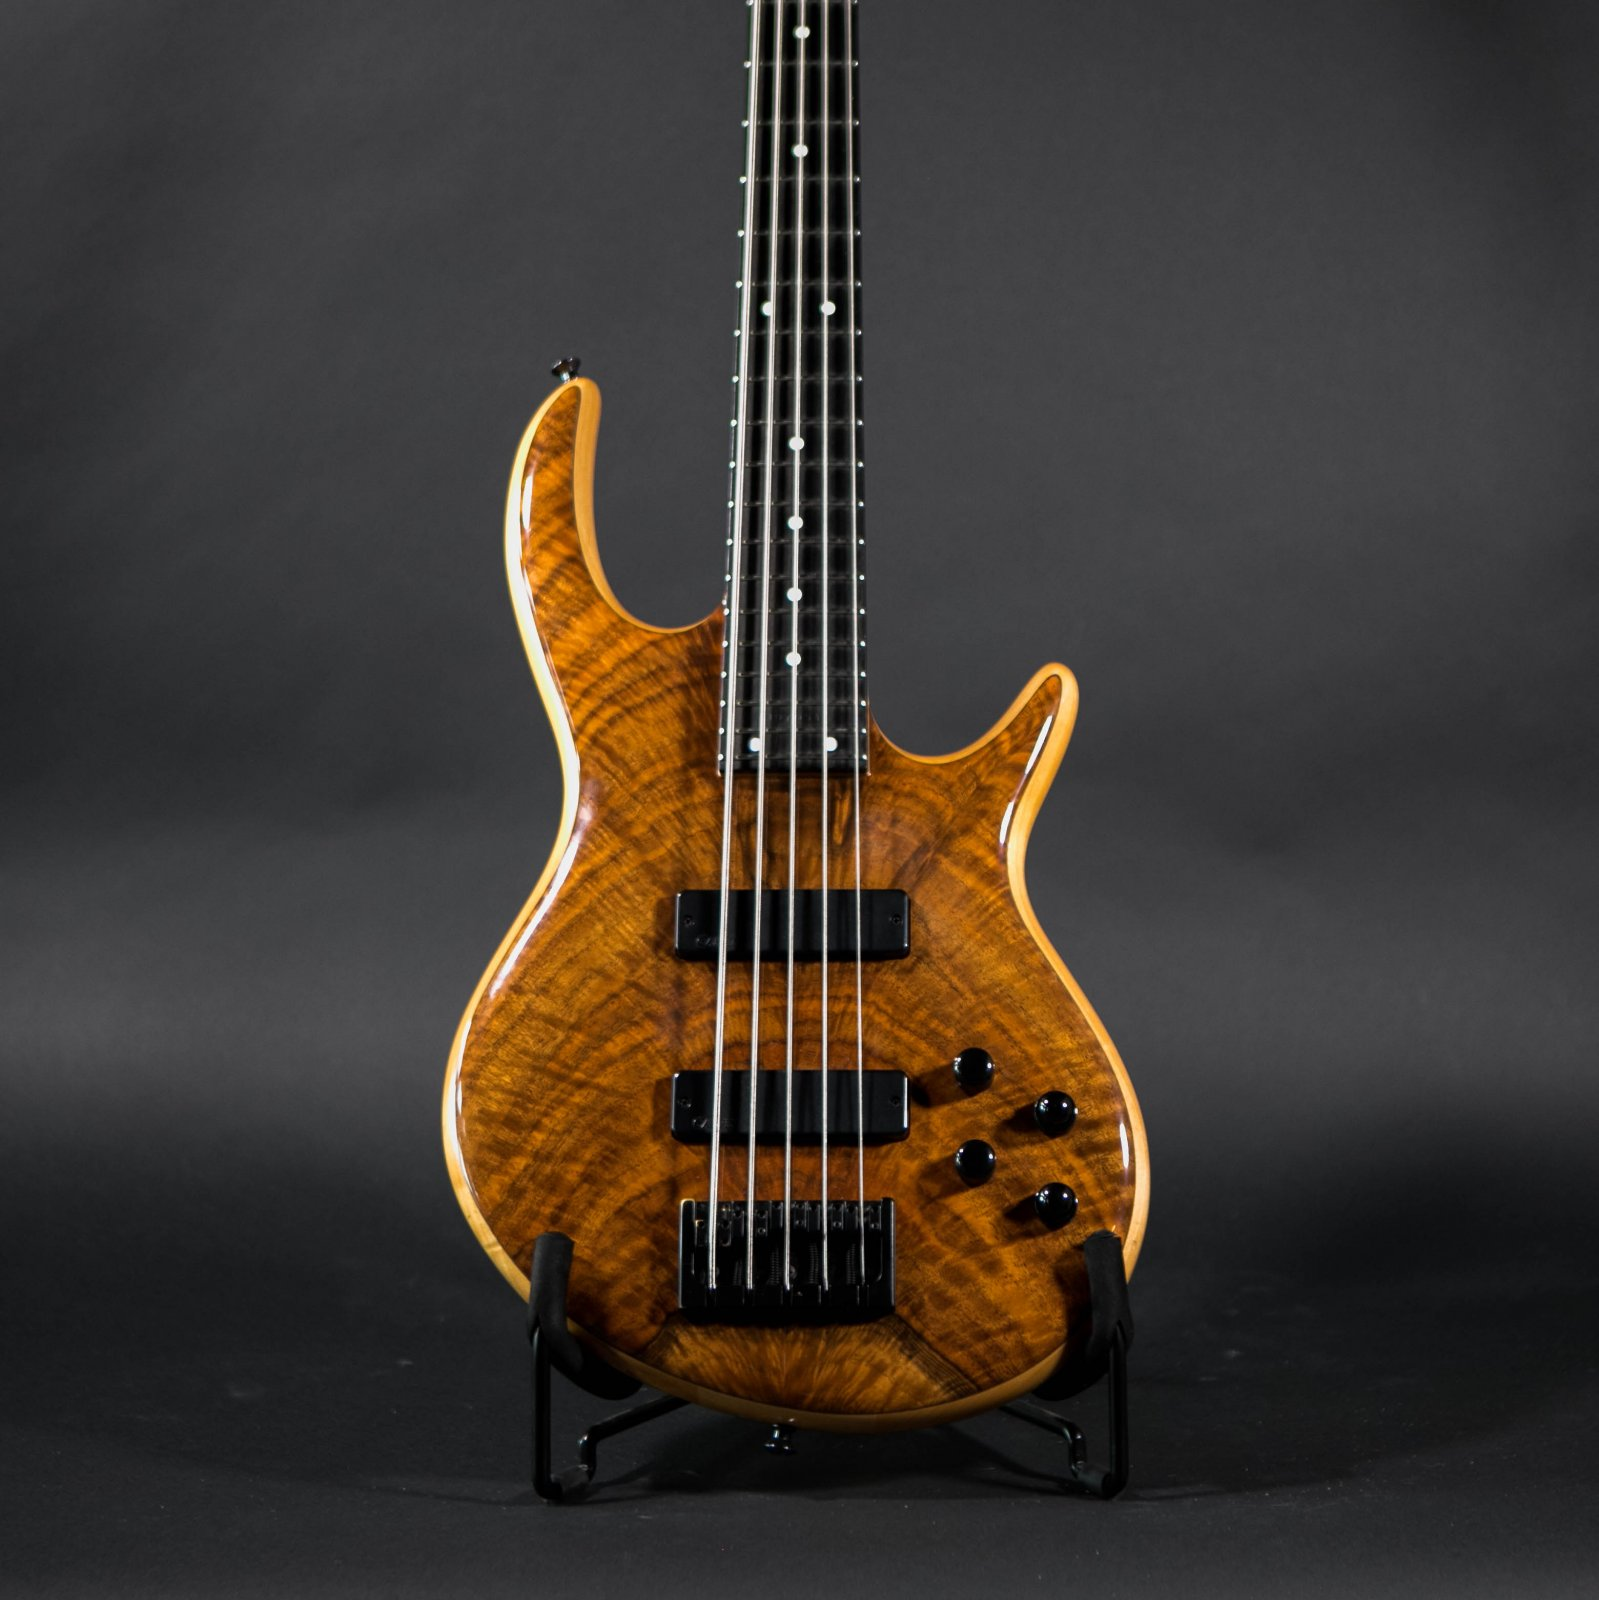 Carvin Icon 5s Bass Guitar - Walnut Finish - Excellent Condition!